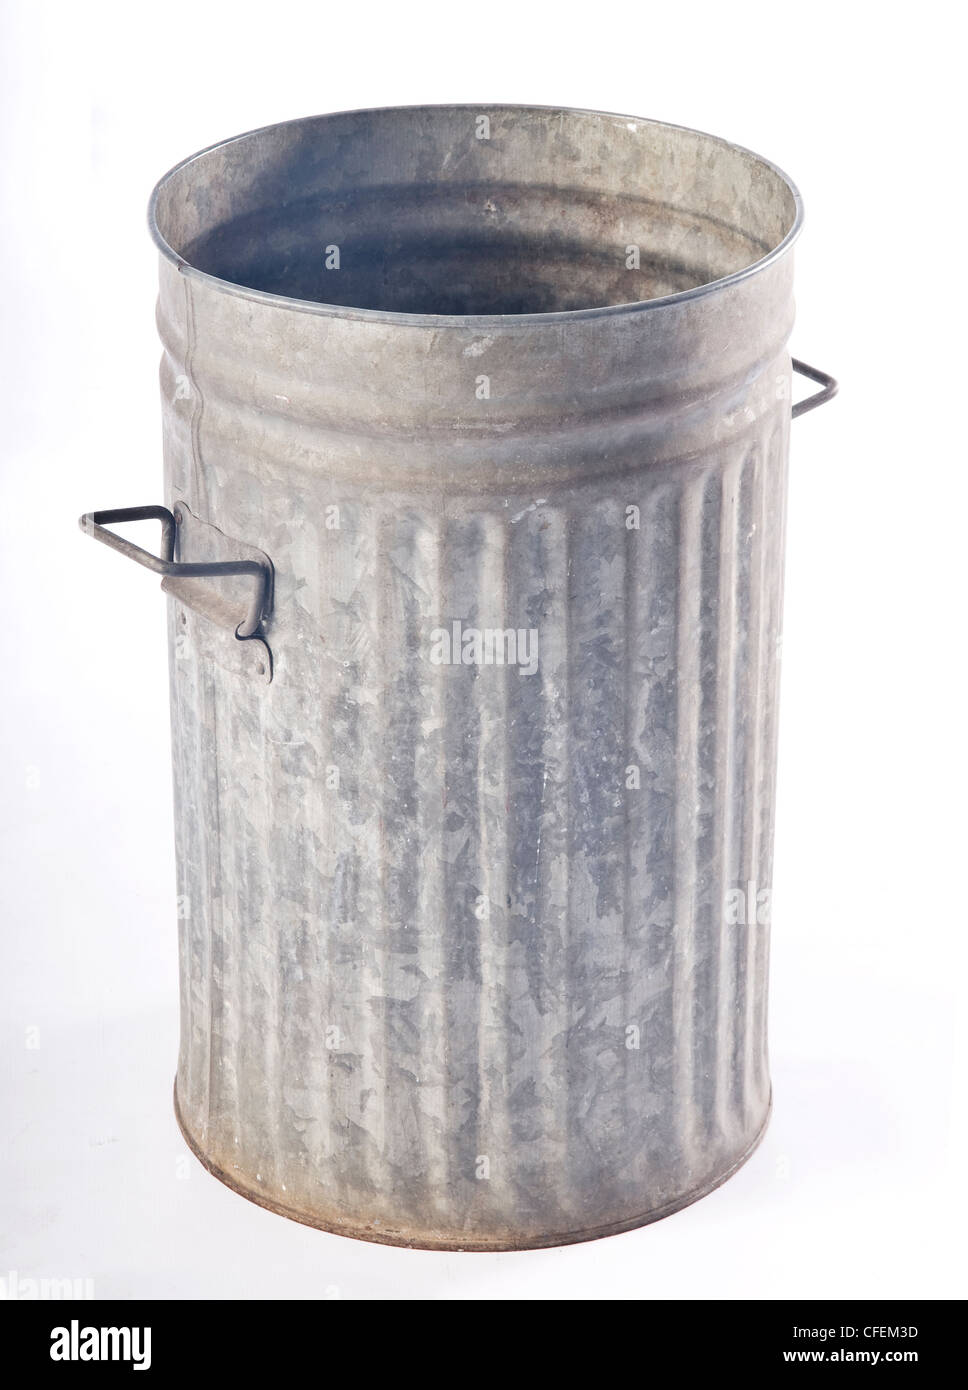 An old corrugated metal garbage bin with folding handles and lid. studio shot on white background. - Stock Image